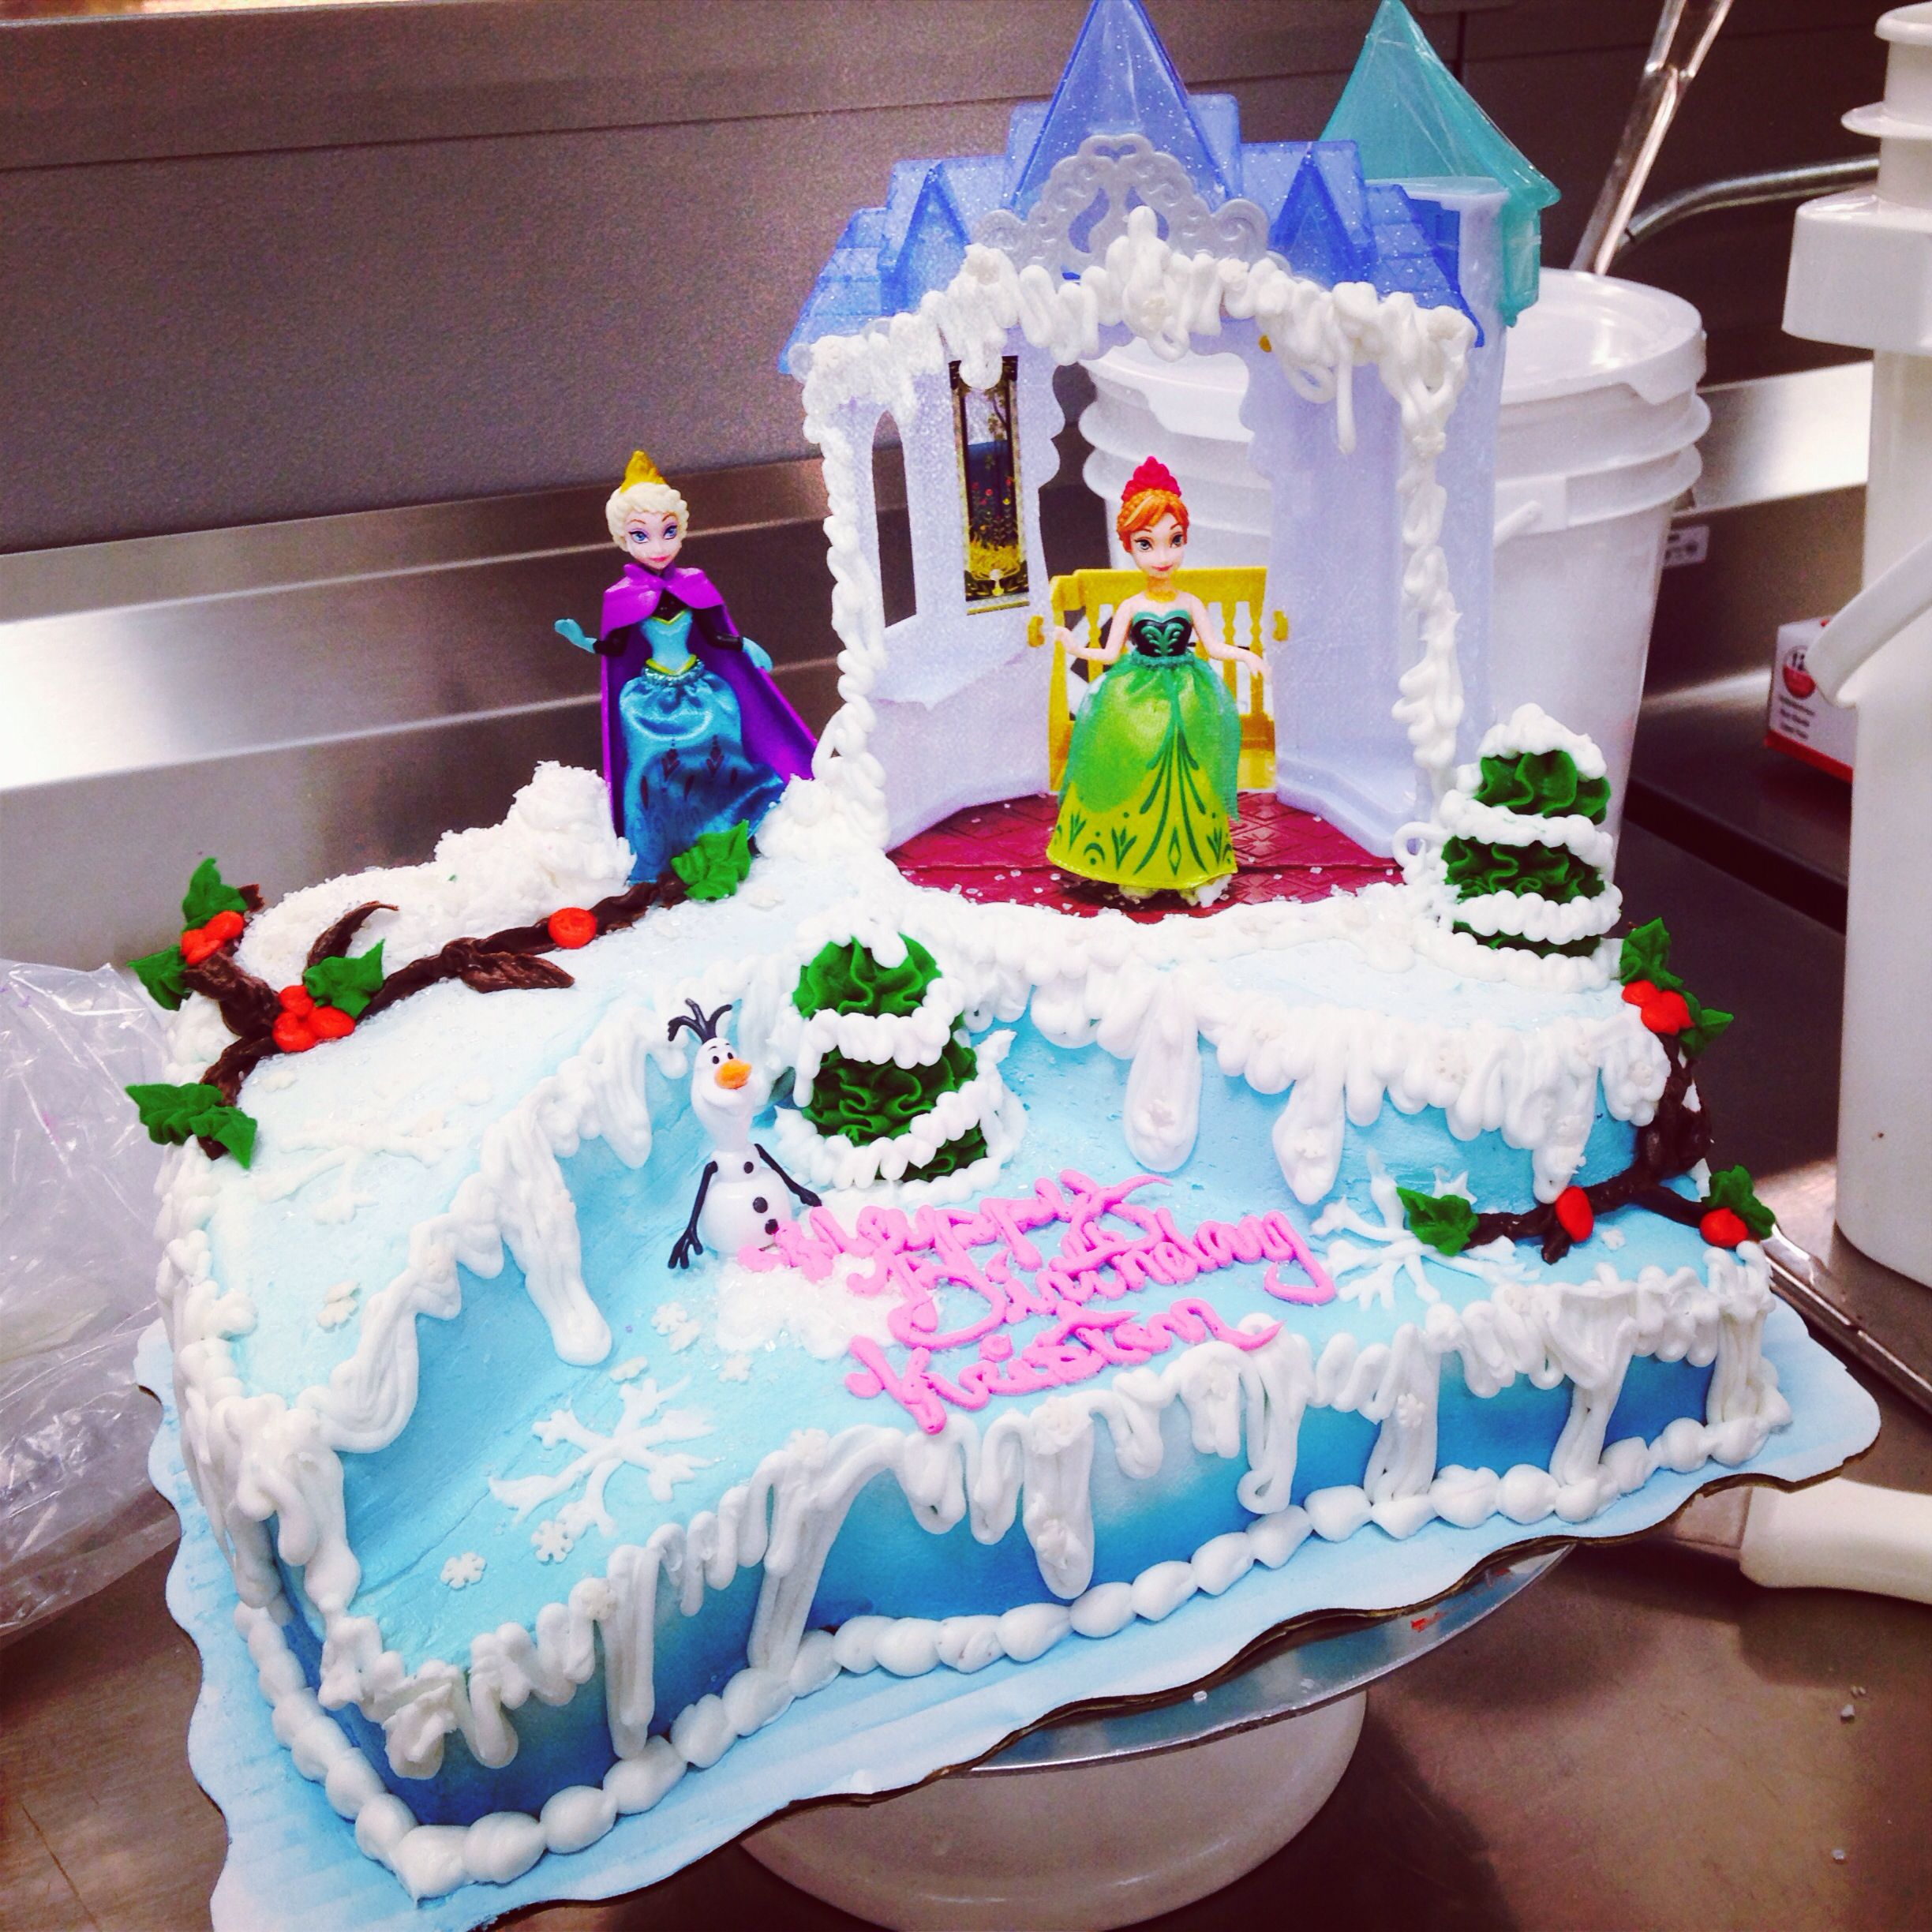 Disney Frozen Cake Signature Sheet